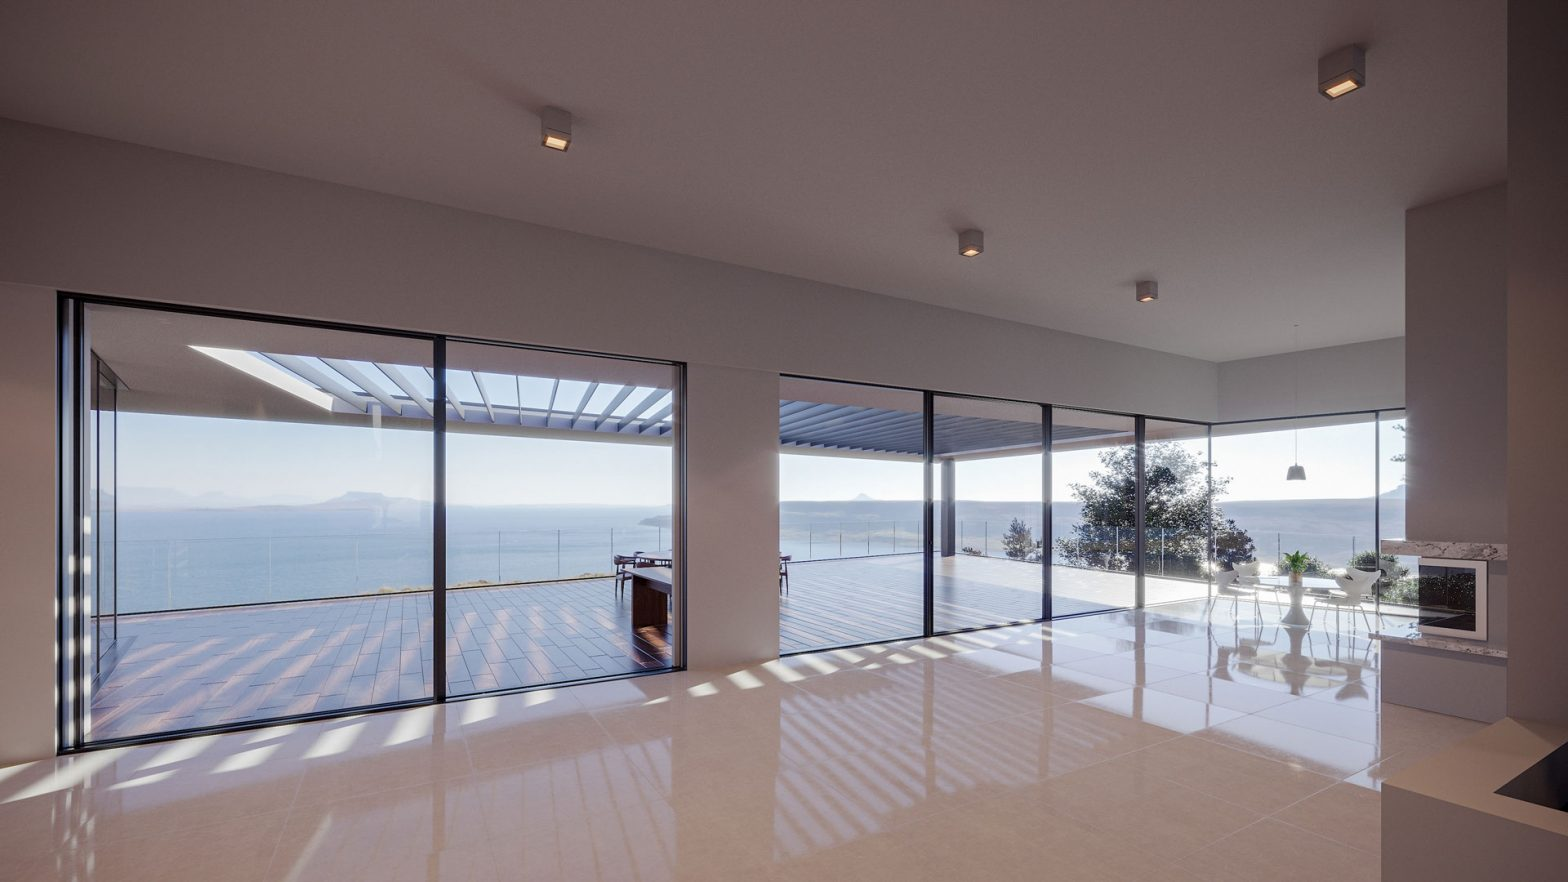 Why Are Glass Doors So Popular in 2021?